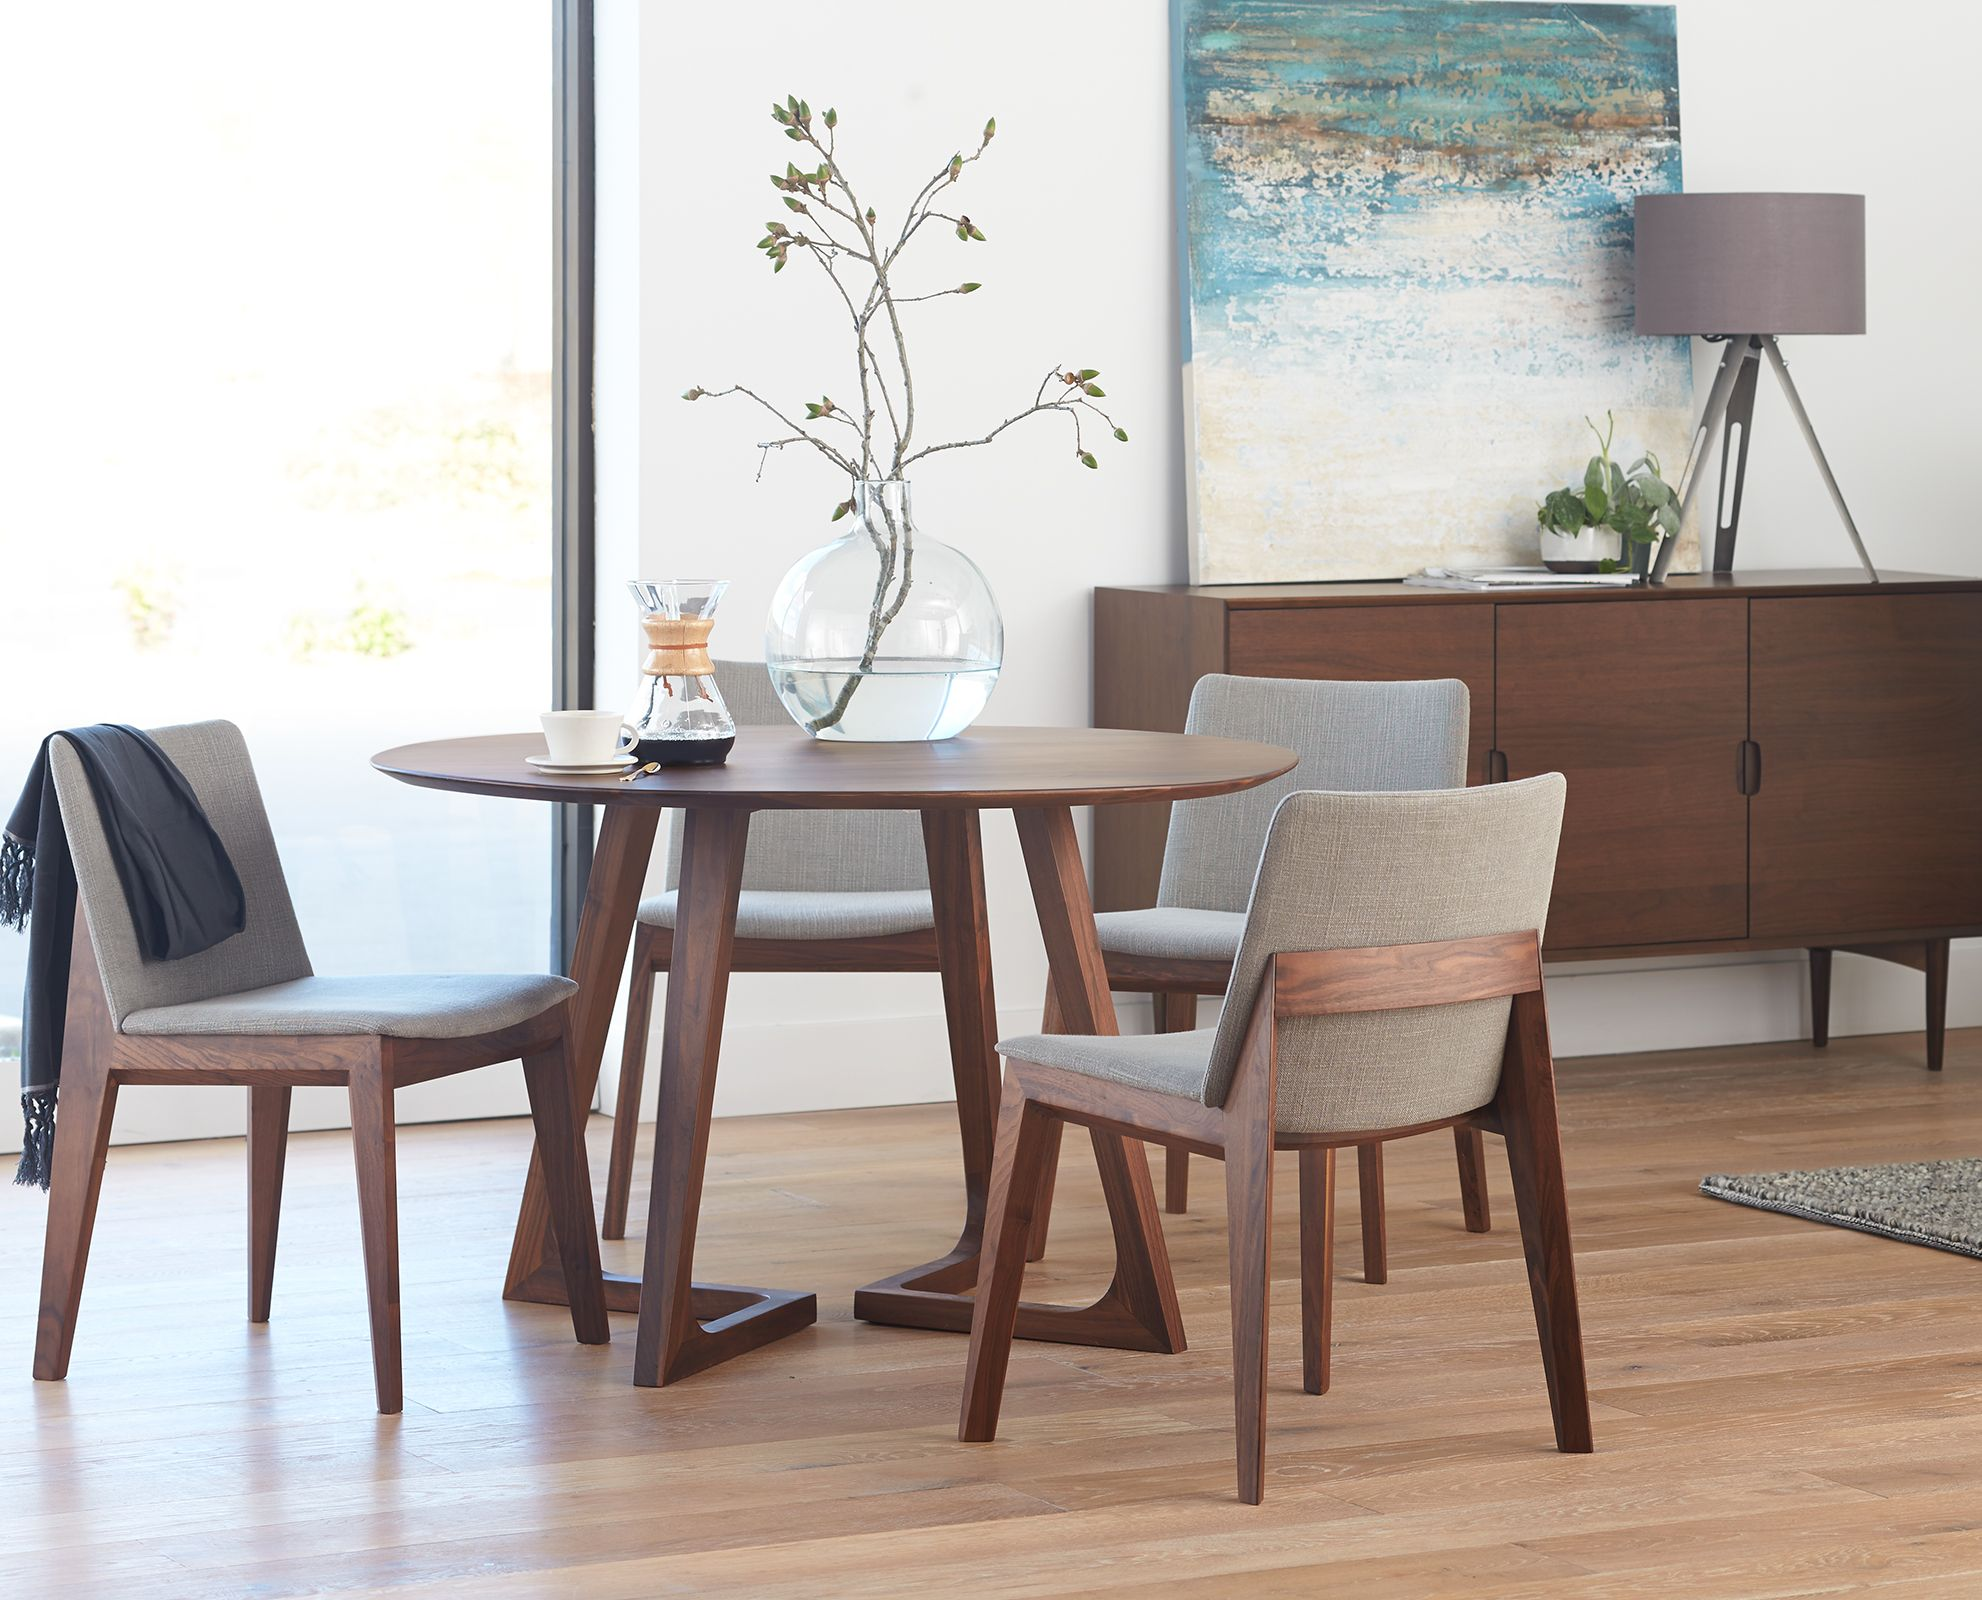 modern kitchen table chairs Round table and chairs from Dania